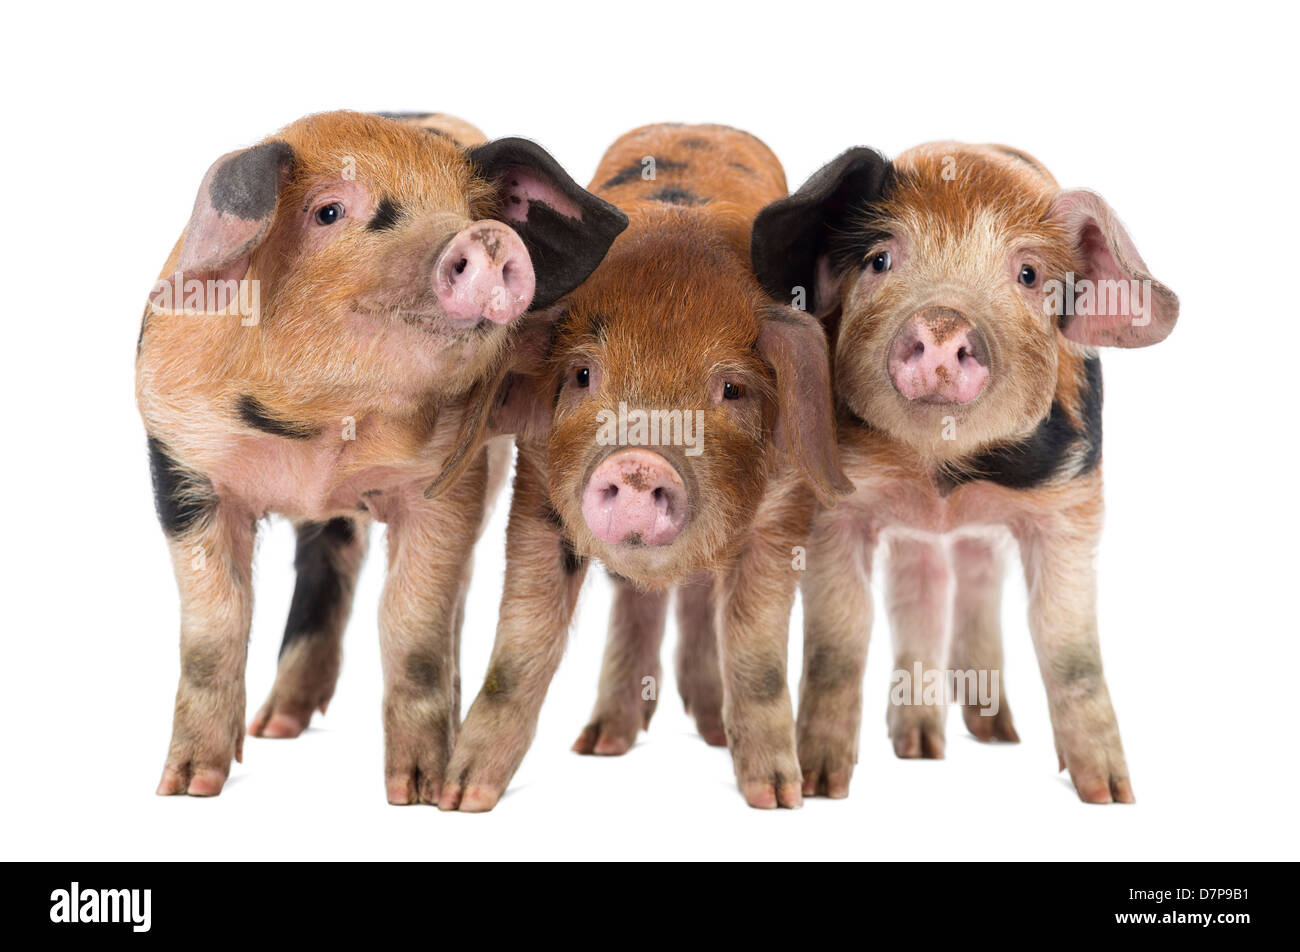 Oxford Sandy and Black piglets, 9 weeks old, against white background - Stock Image